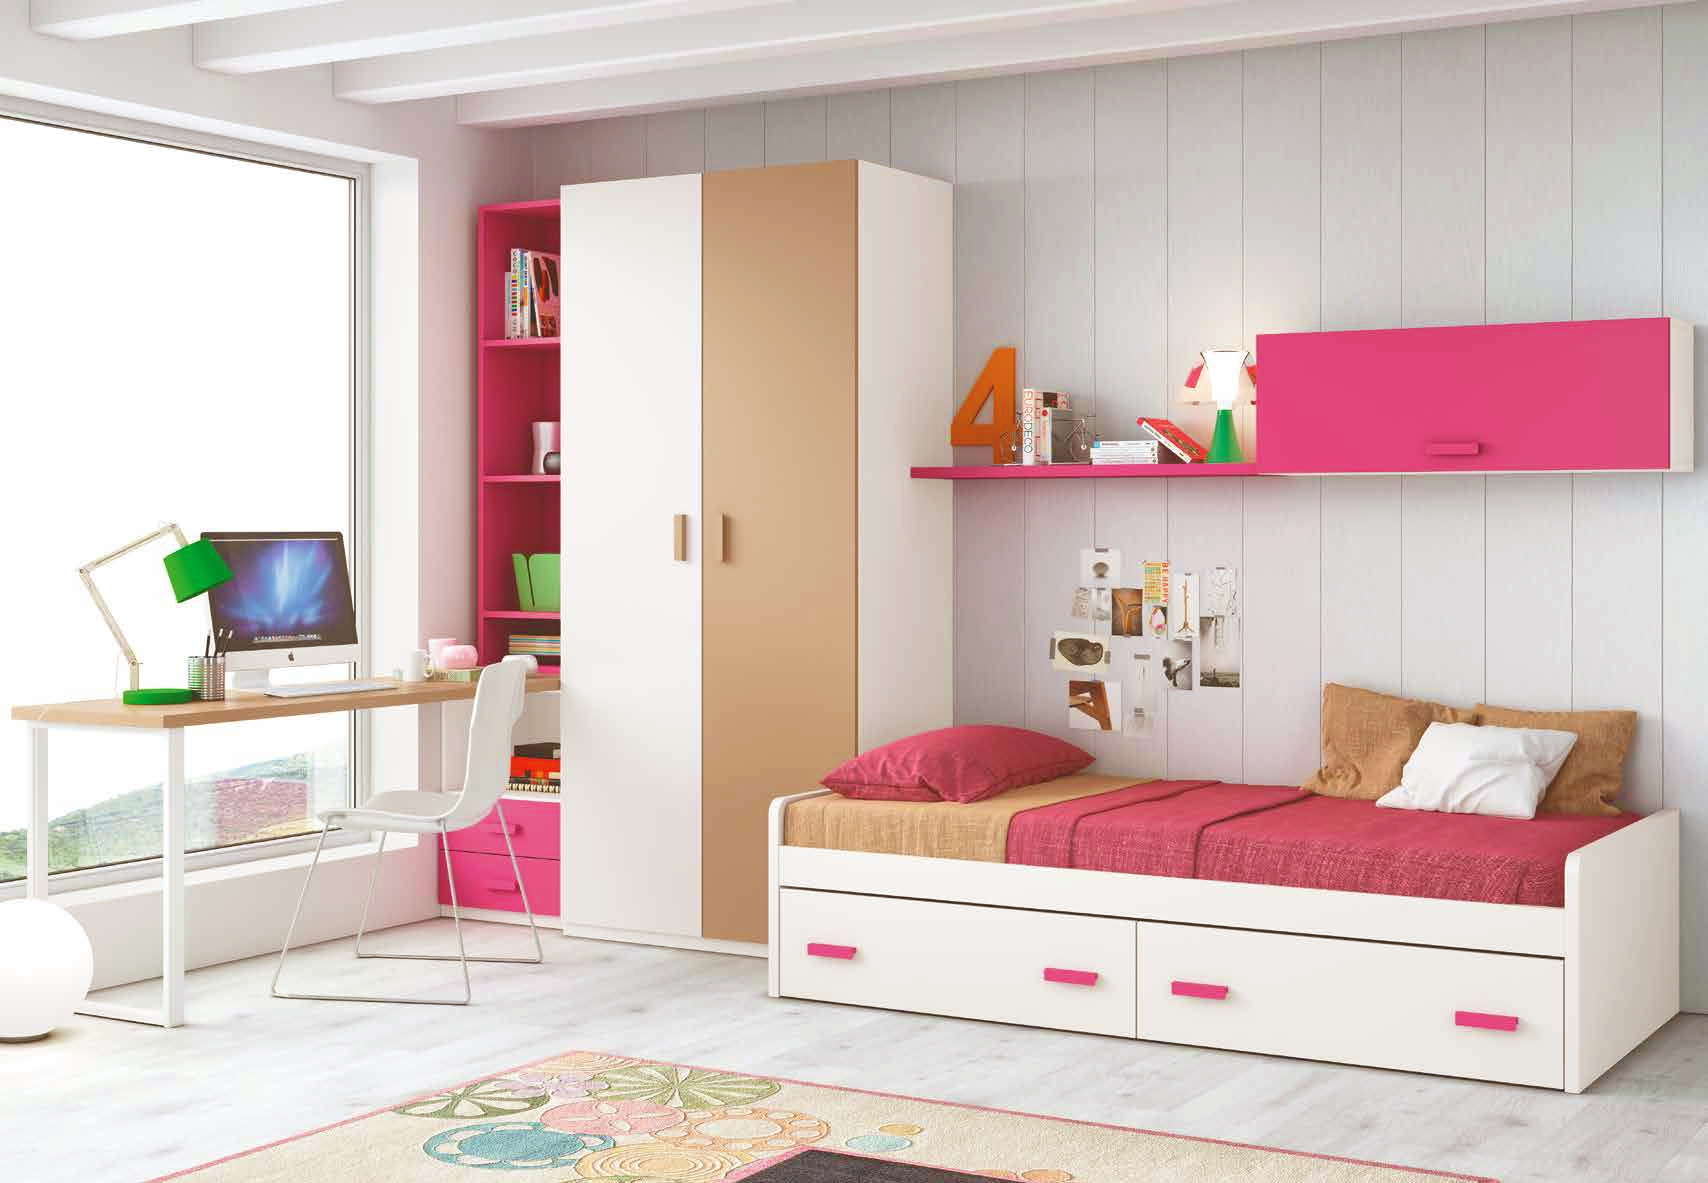 canape chambre fille ikea avec des id es int ressantes pour la conception de la. Black Bedroom Furniture Sets. Home Design Ideas